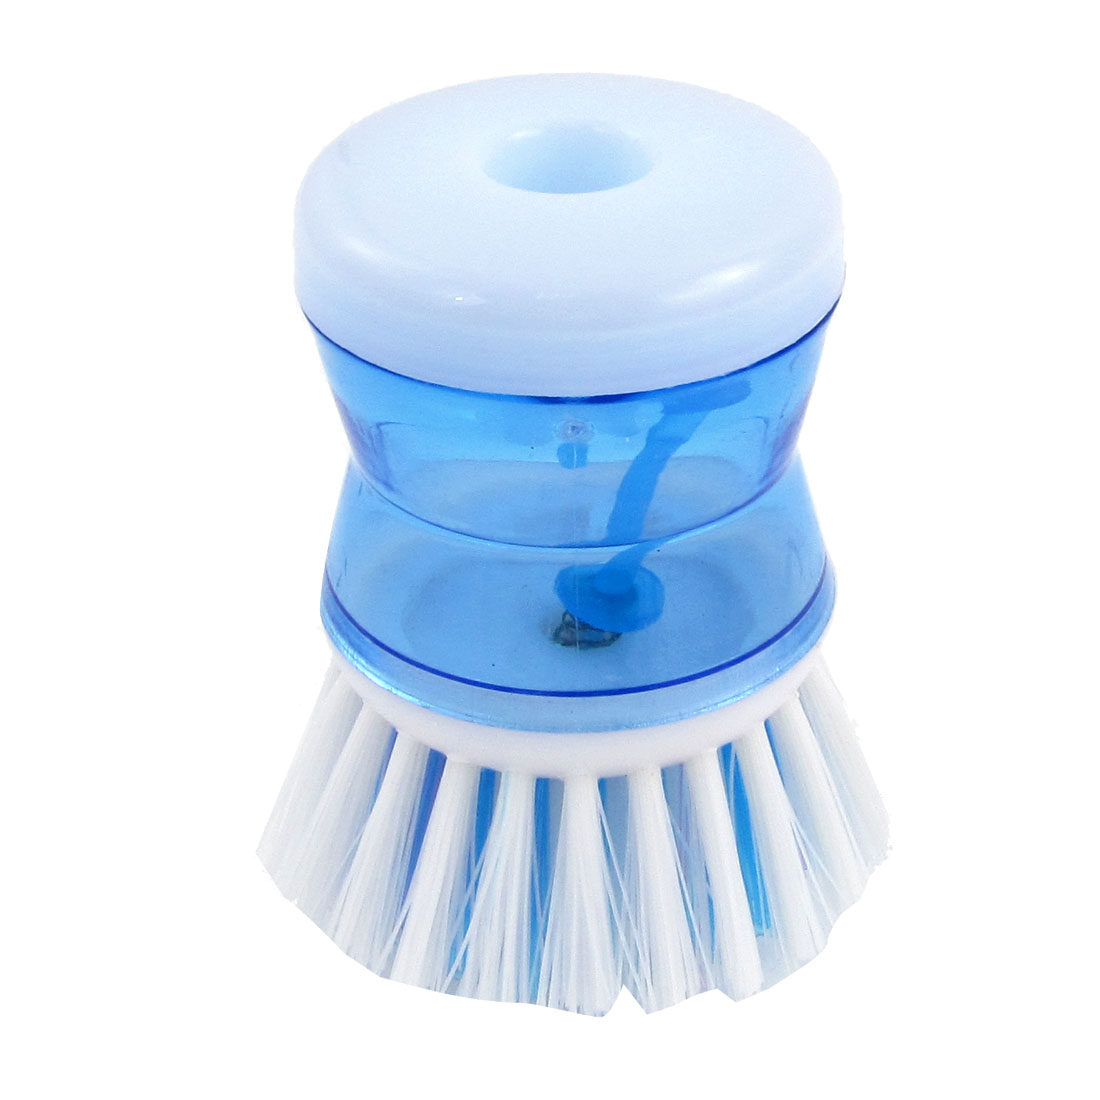 Pot Pan Wok Bowl Cleaning Tool Plastic Scrubber Brush Blue White